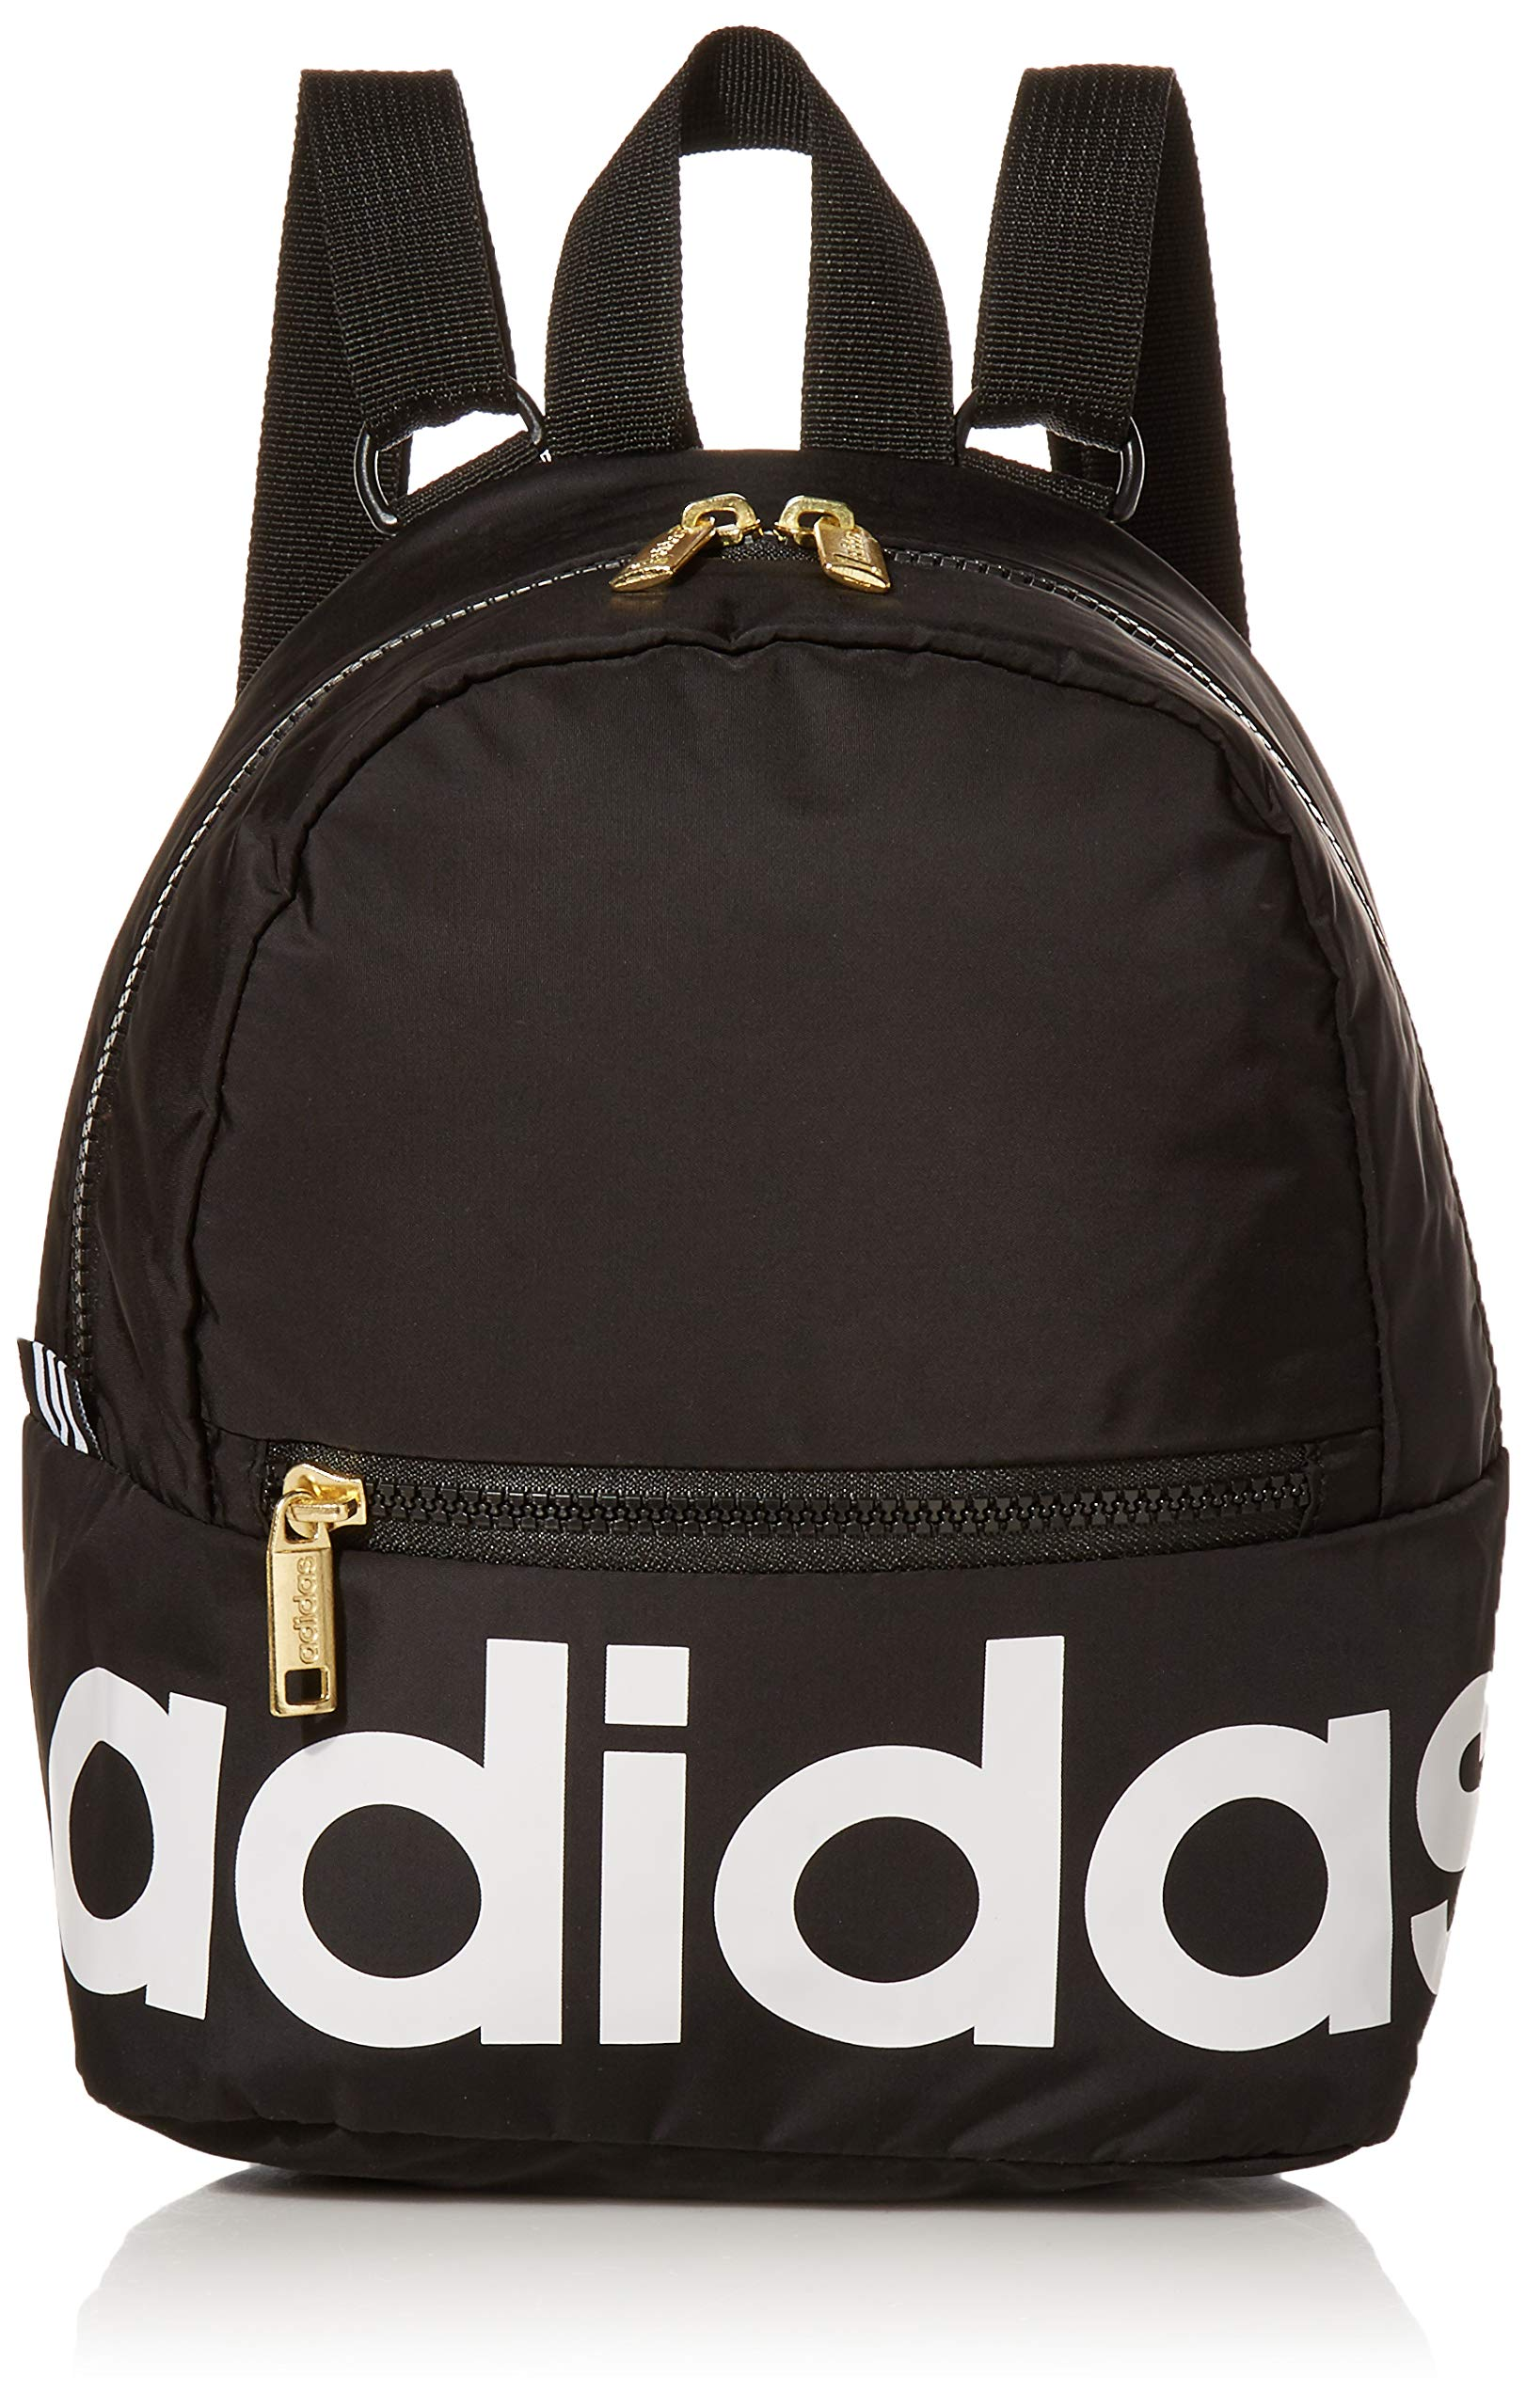 Linear Mini Backpack Black/White/Gold, One Size- Buy Online in ...